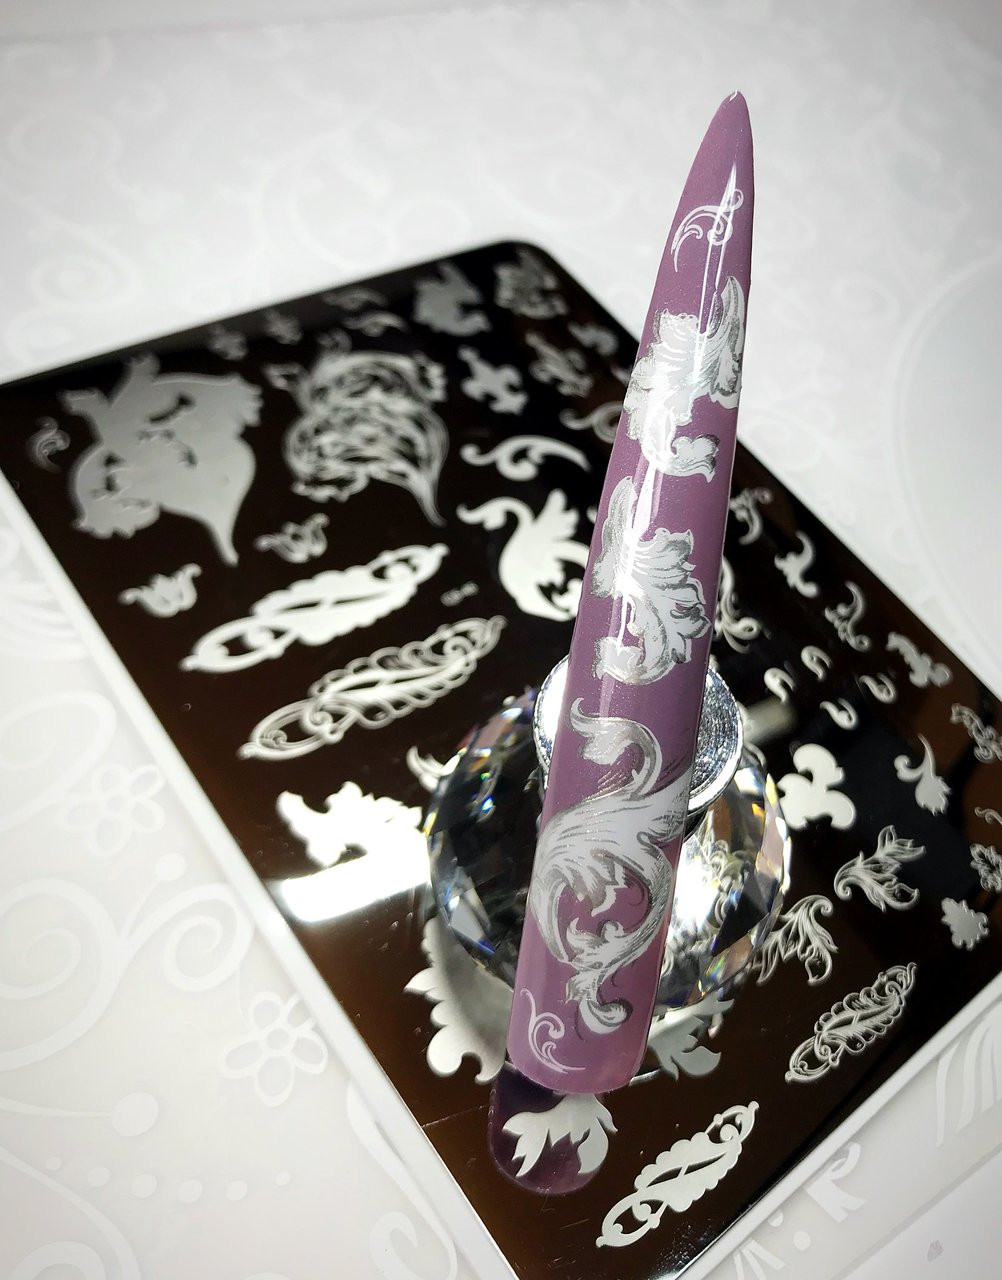 Ornamental Flourish nail stamping plate by Clear Jelly Stamper. Available in the USA at www.lanternandwren.com